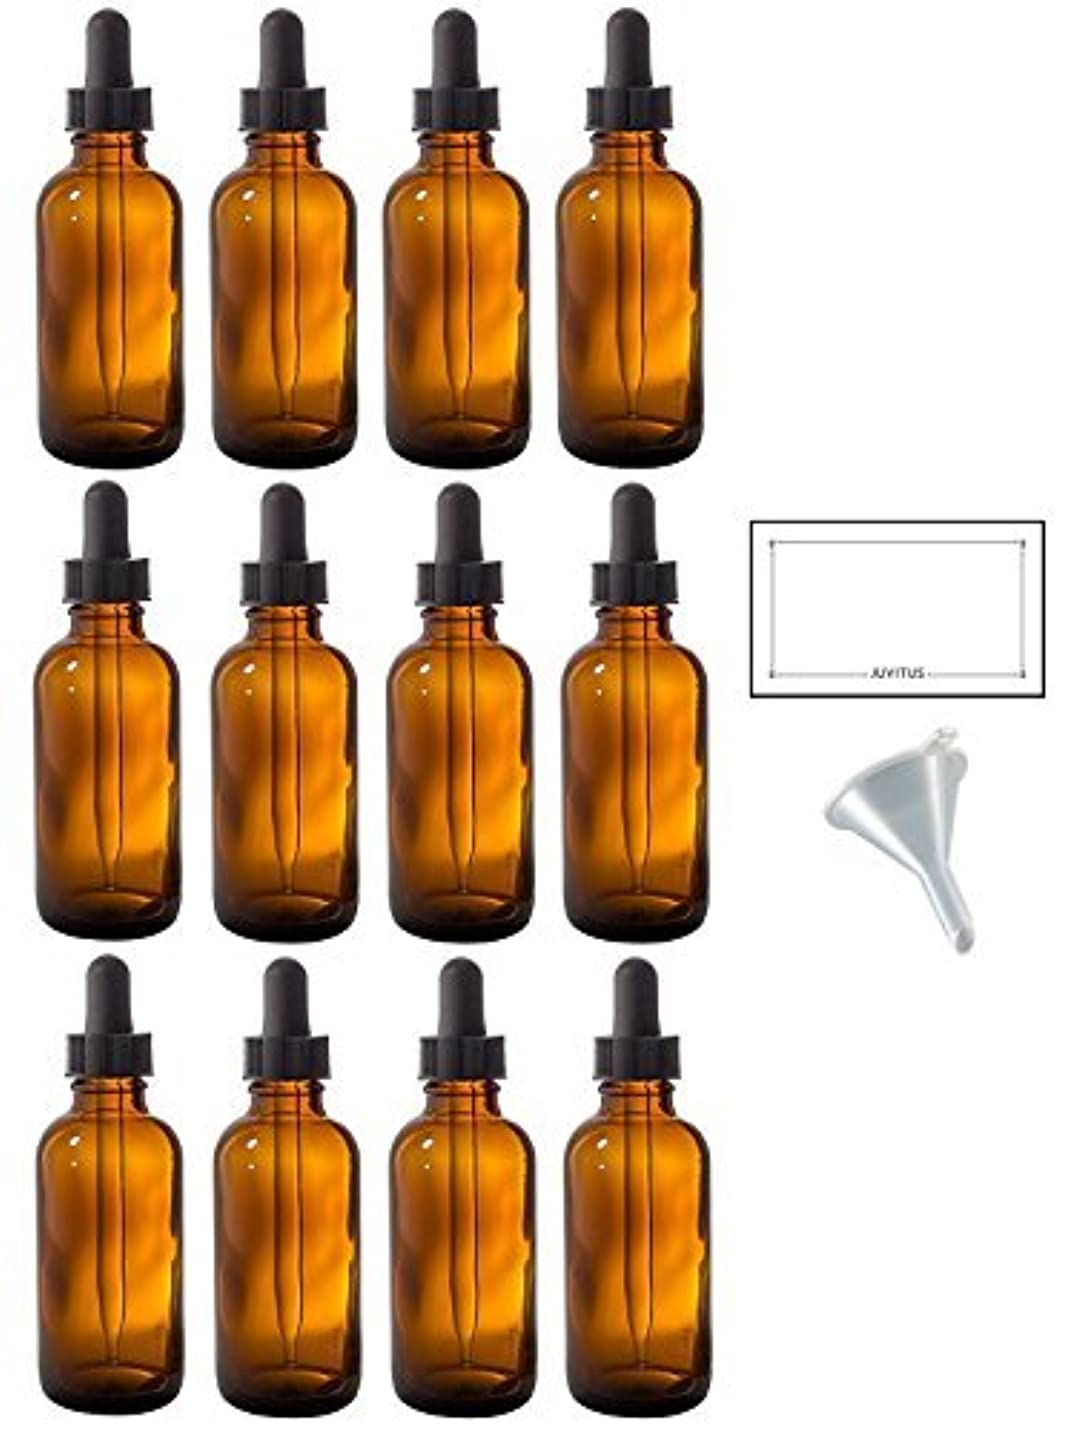 パリティビートまどろみのある2 oz Amber Glass Boston Round Dropper Bottle (12 pack) + Funnel and Labels for essential oils, aromatherapy, e-liquid, food grade, bpa free [並行輸入品]